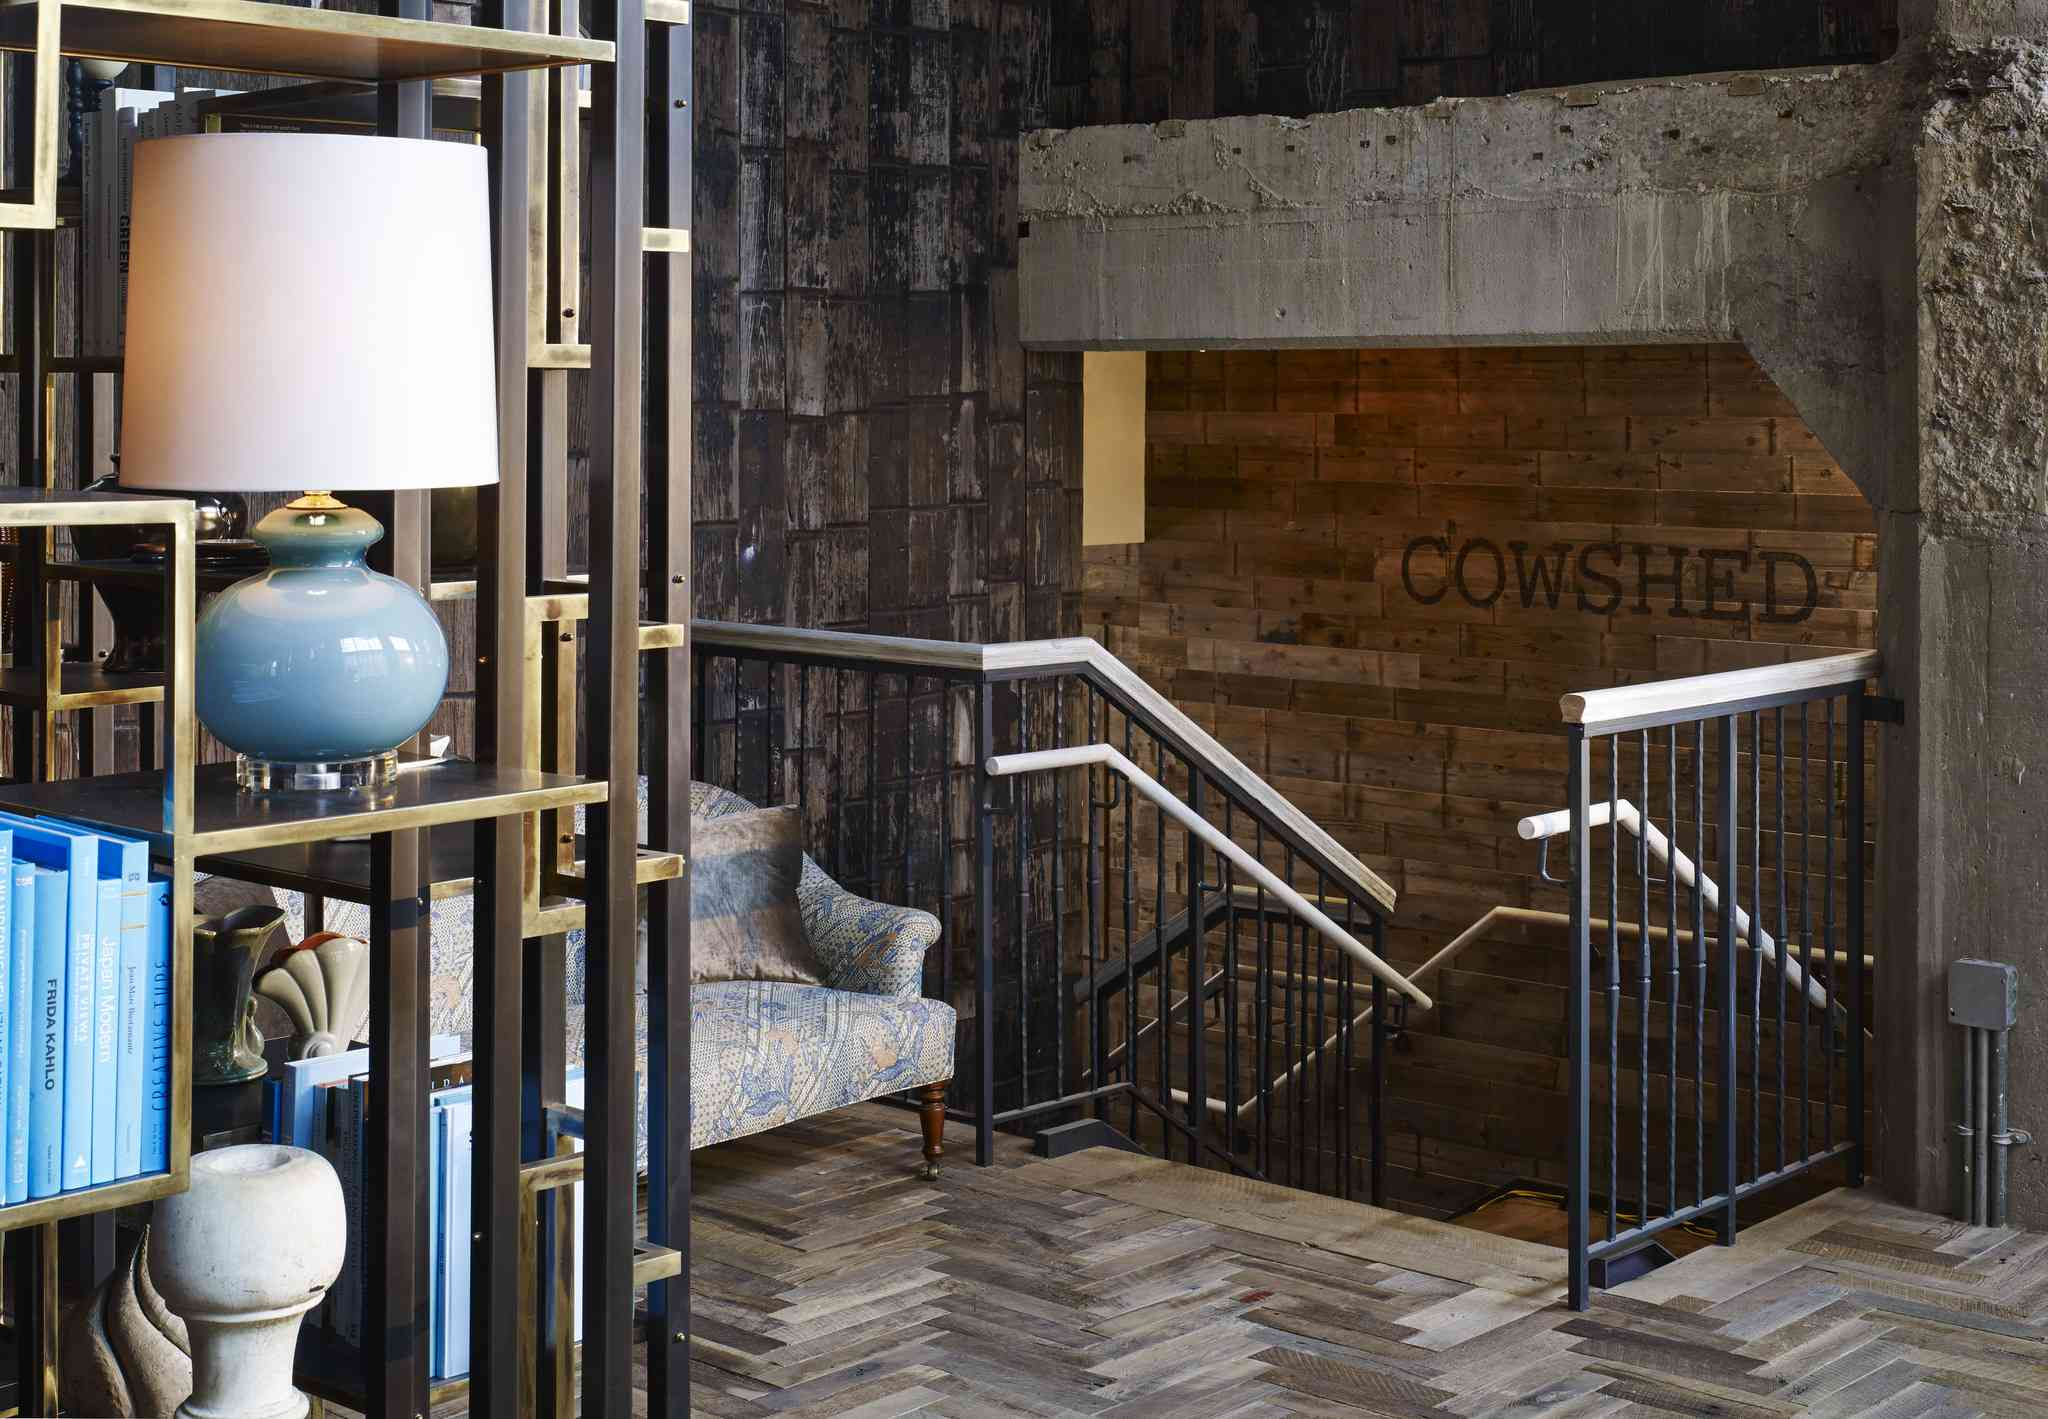 Cowshed, Soho House, Chicago